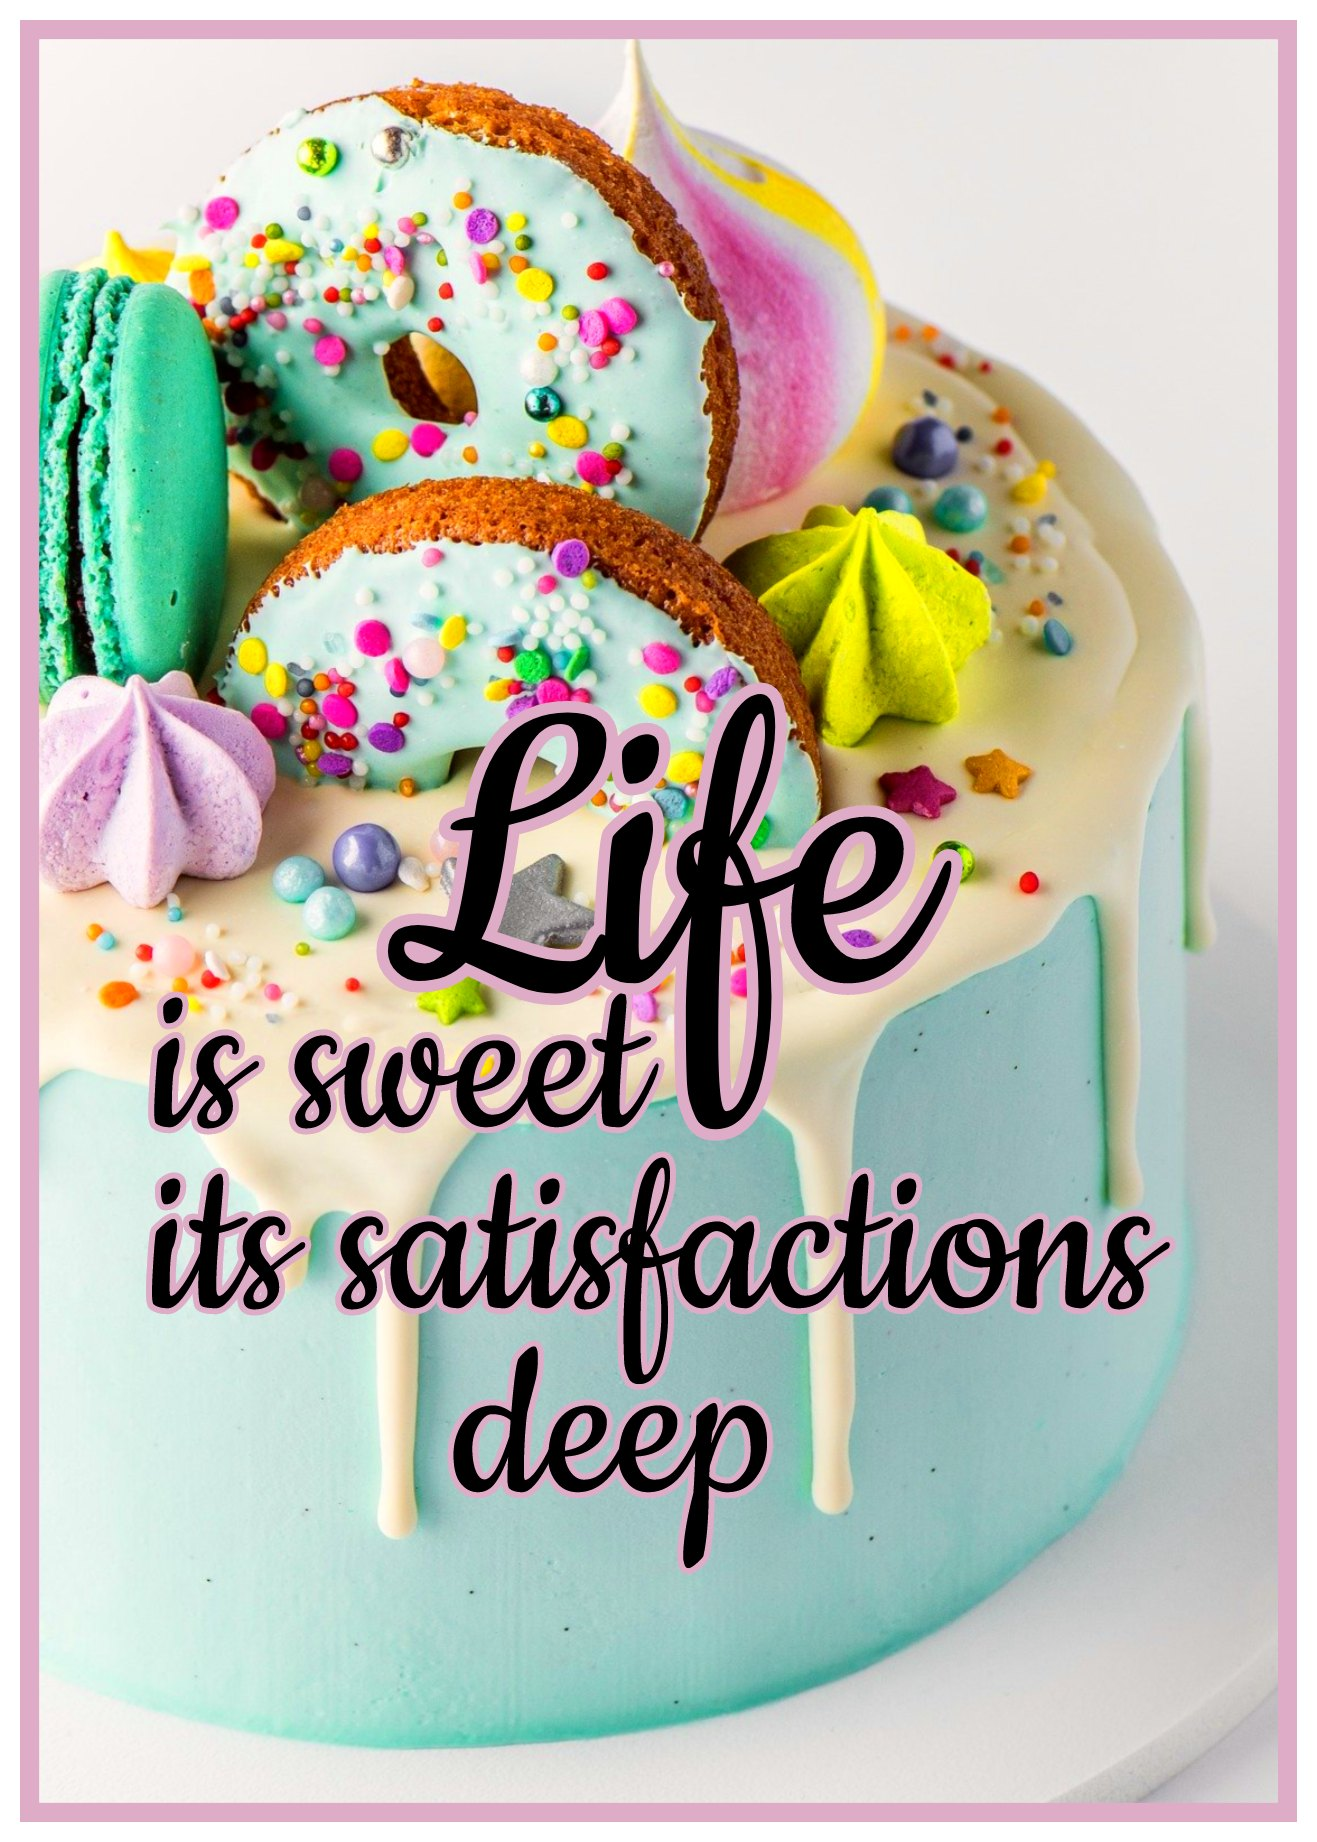 Quote Josephine Hart Life is sweet its satisfaction deep bekitschig blog